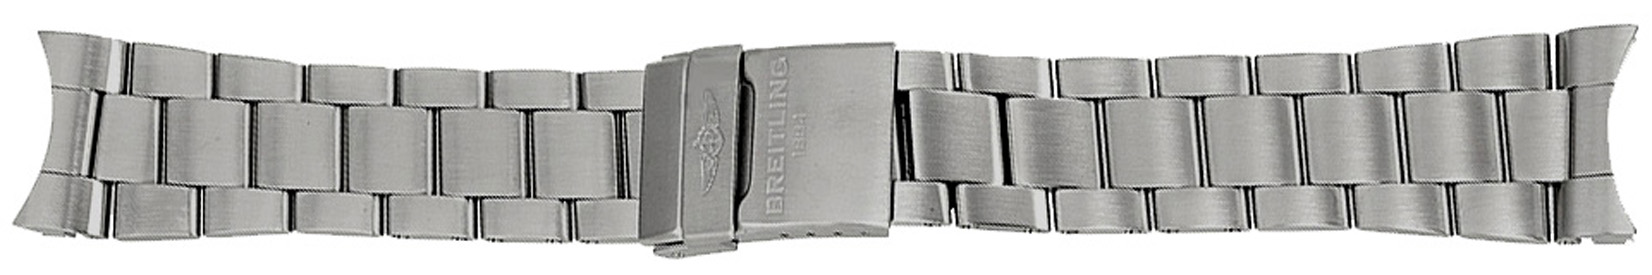 Image of Breitling 22mm Professional III Bracelet 162A